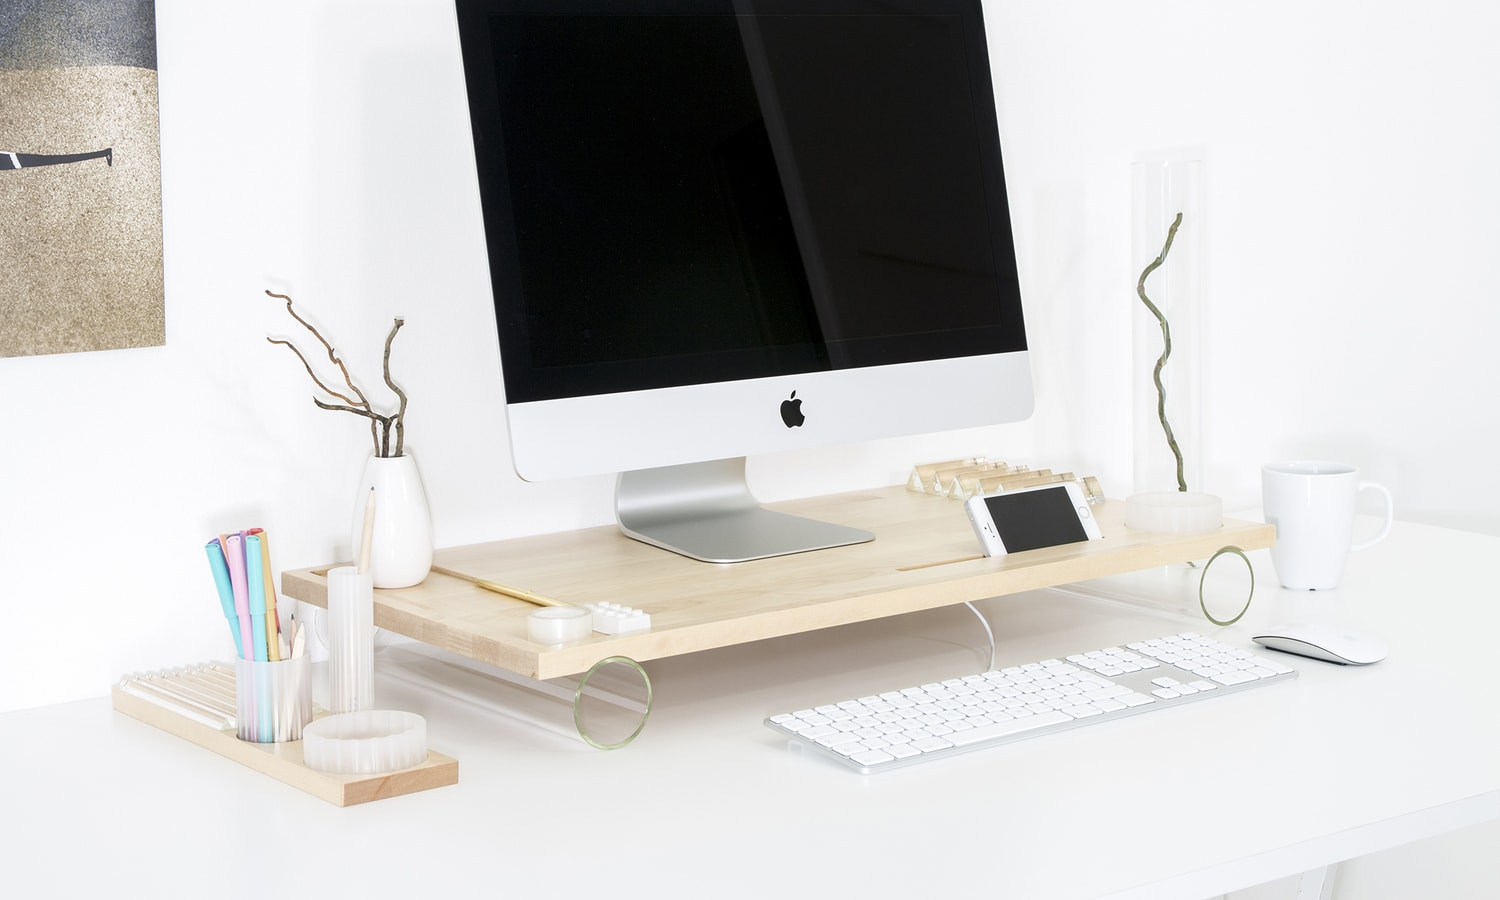 A modular stand for stationery inspired by industrial aesthetics. It is made of solid wood in combination with prefabricated parts from technical glass Simax. Designed by Jiri Krejcirik.